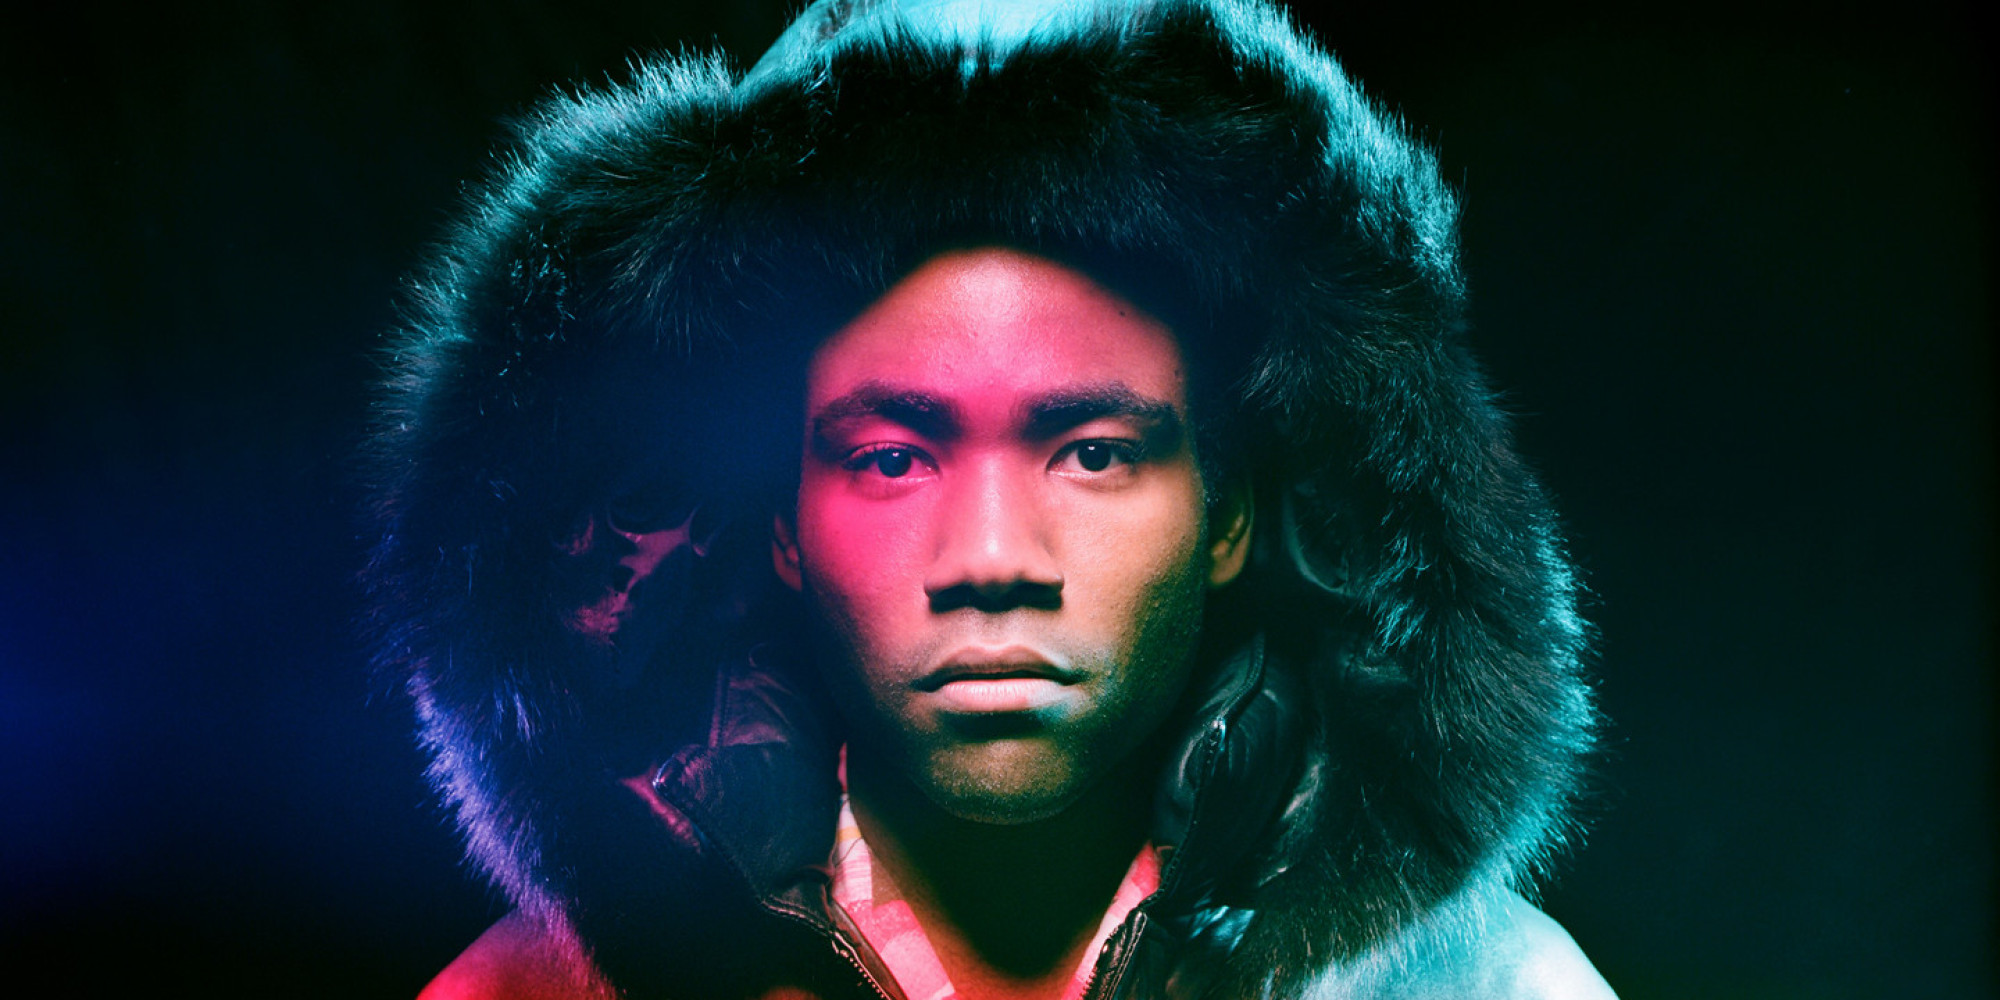 Childish Gambino Will Play New Album for Fans